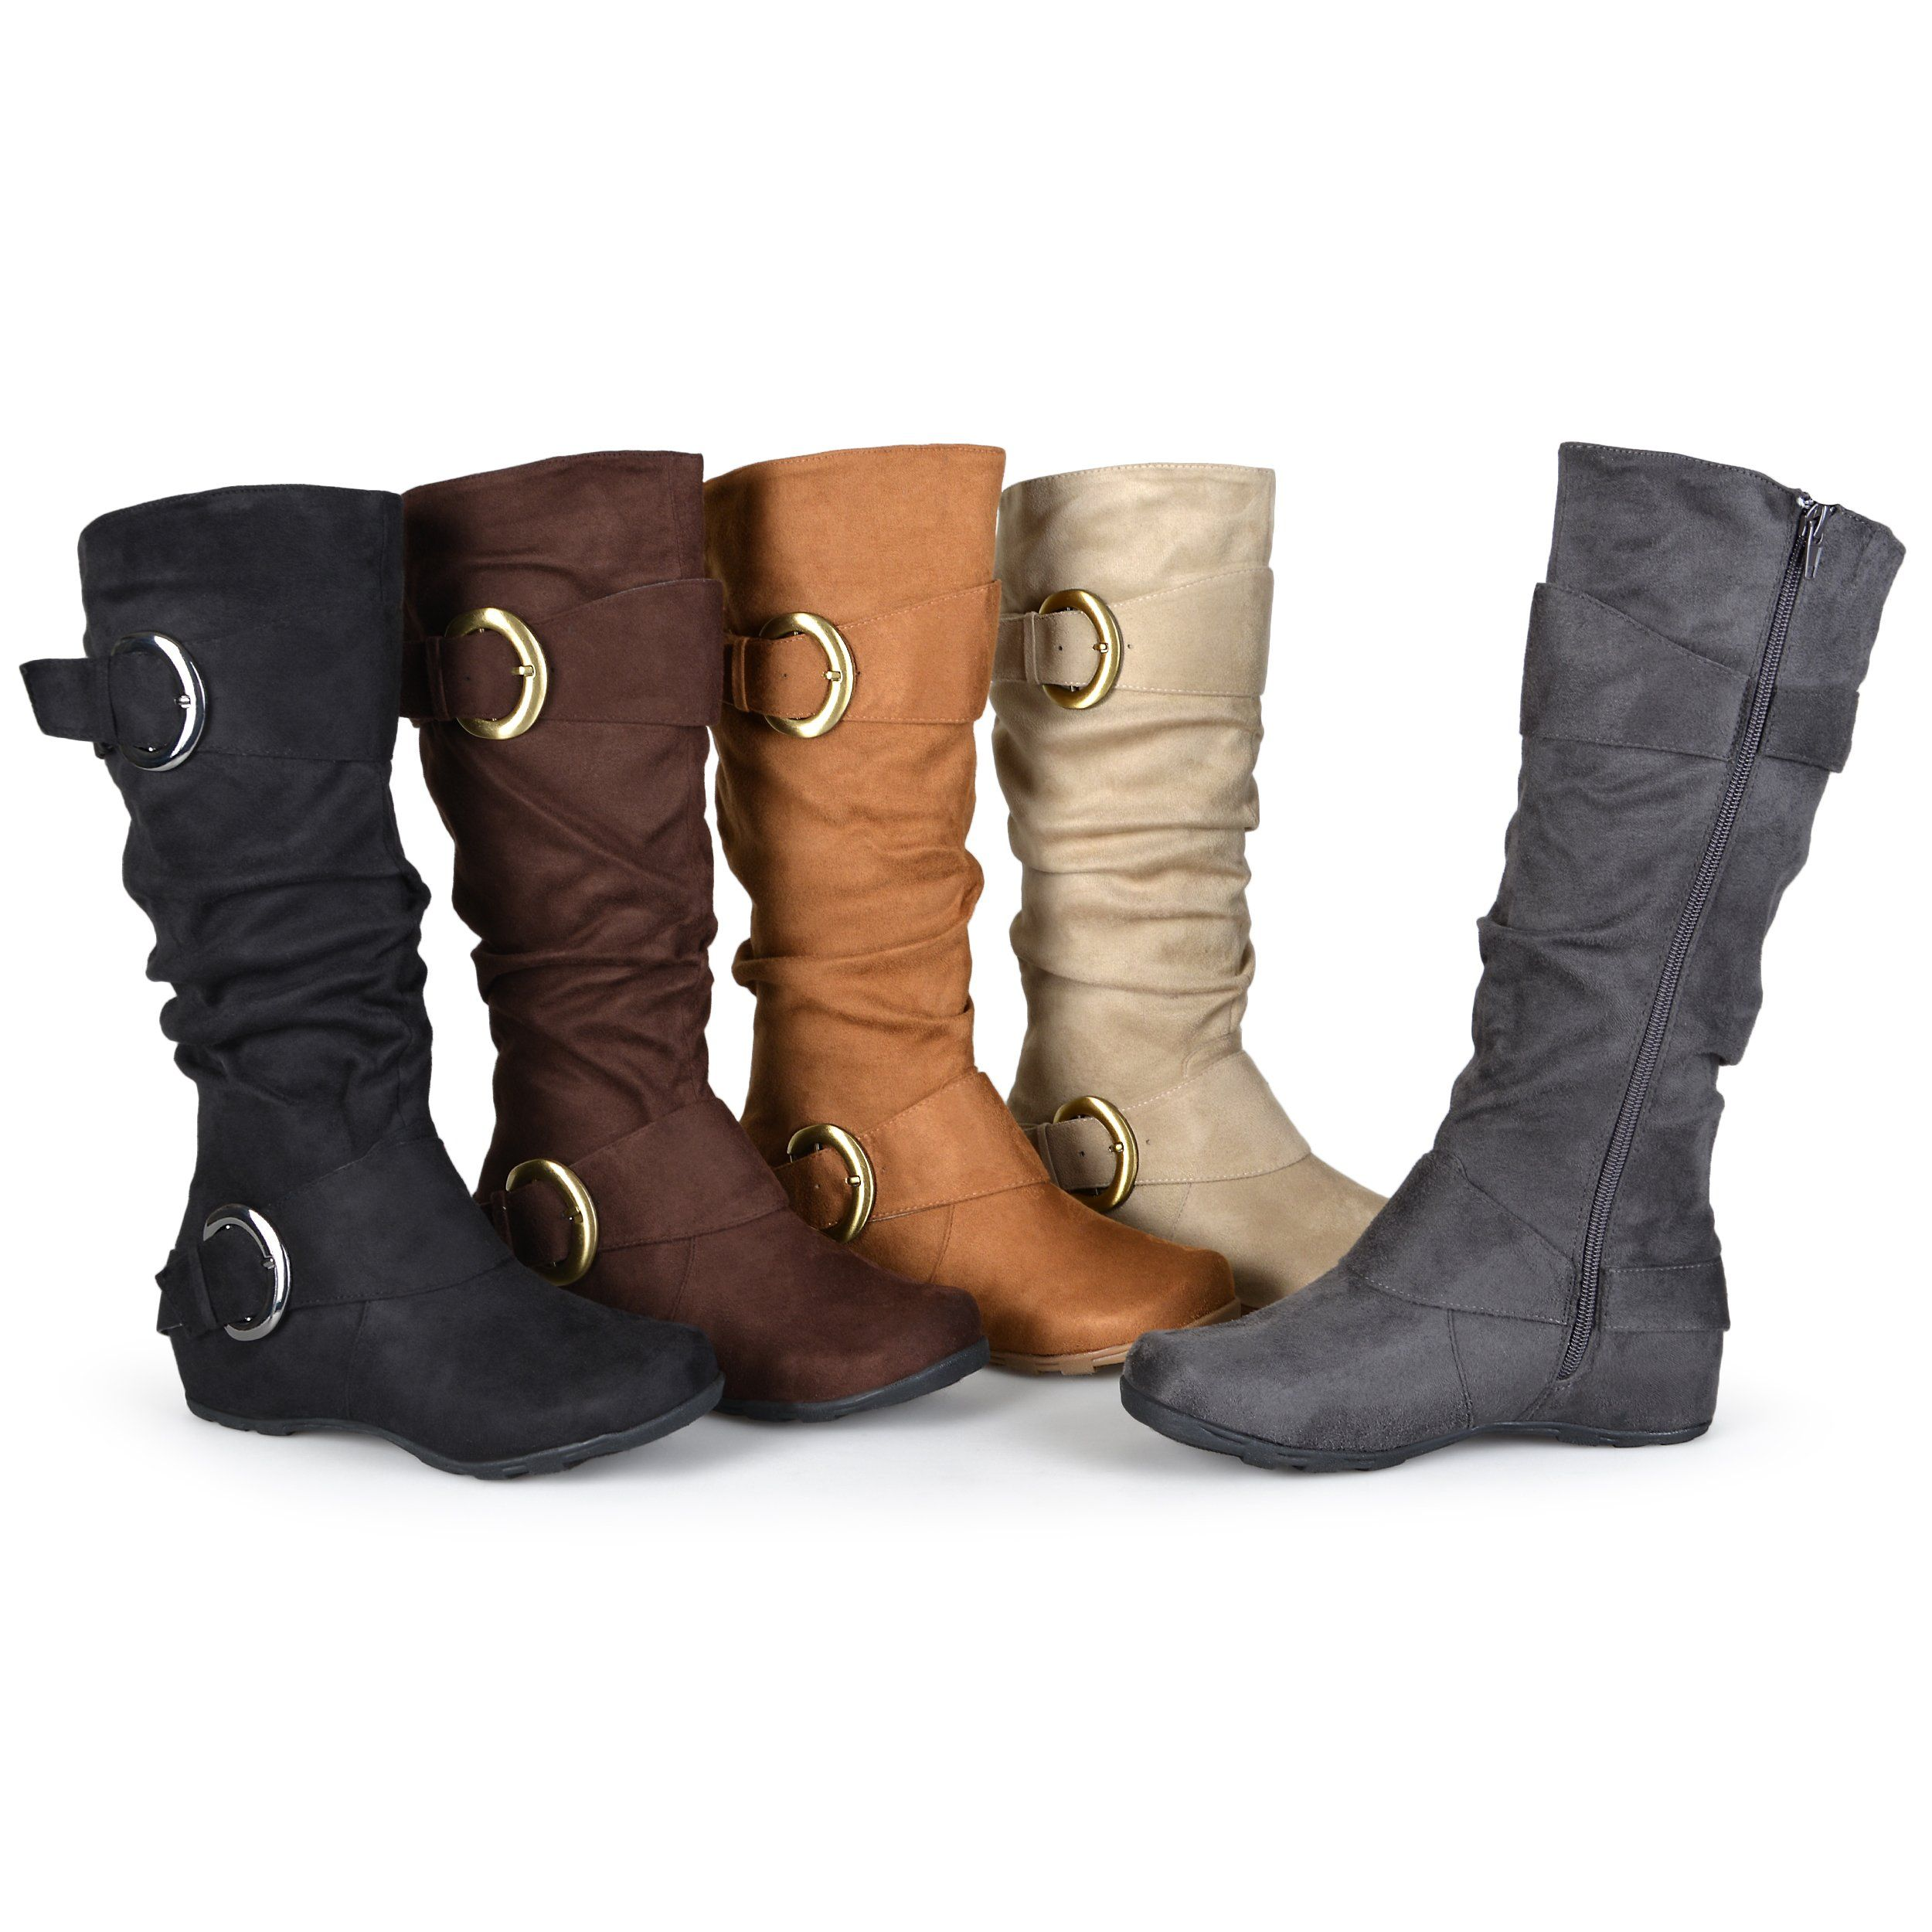 3f92f4e86de8 Amazon.com  Brinley Co. Womens Buckle Knee-High Slouch Boot In Regular and  Wide-Calf Sizes Grey 6  Shoes